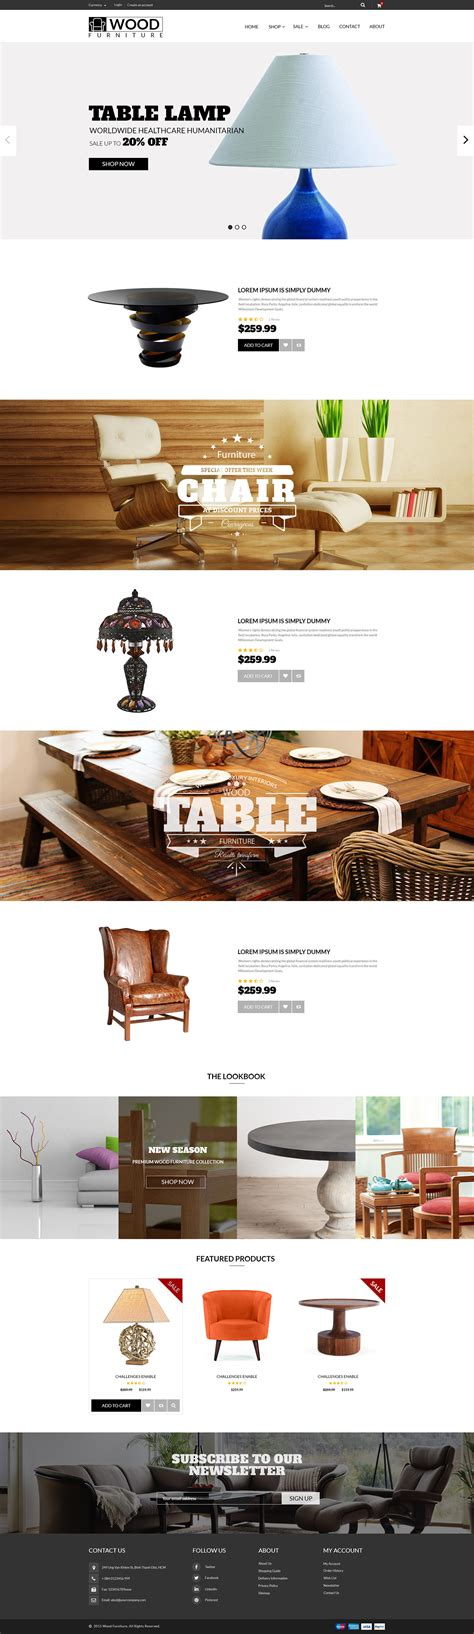 shopify themes parallax parallax shopify template for furniture decor store on